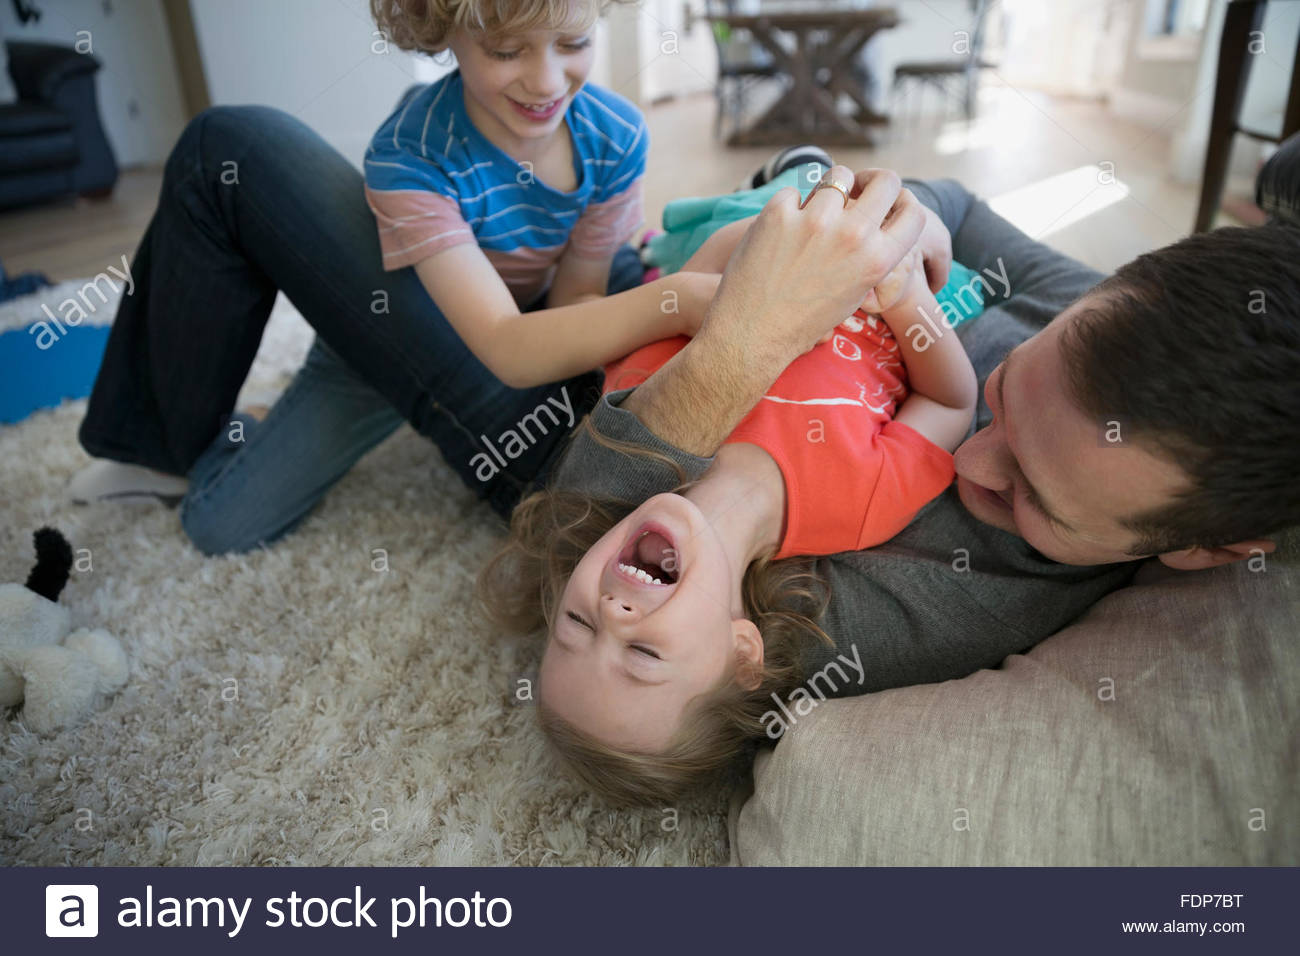 Father and brother tickling sister on rug - Stock Image